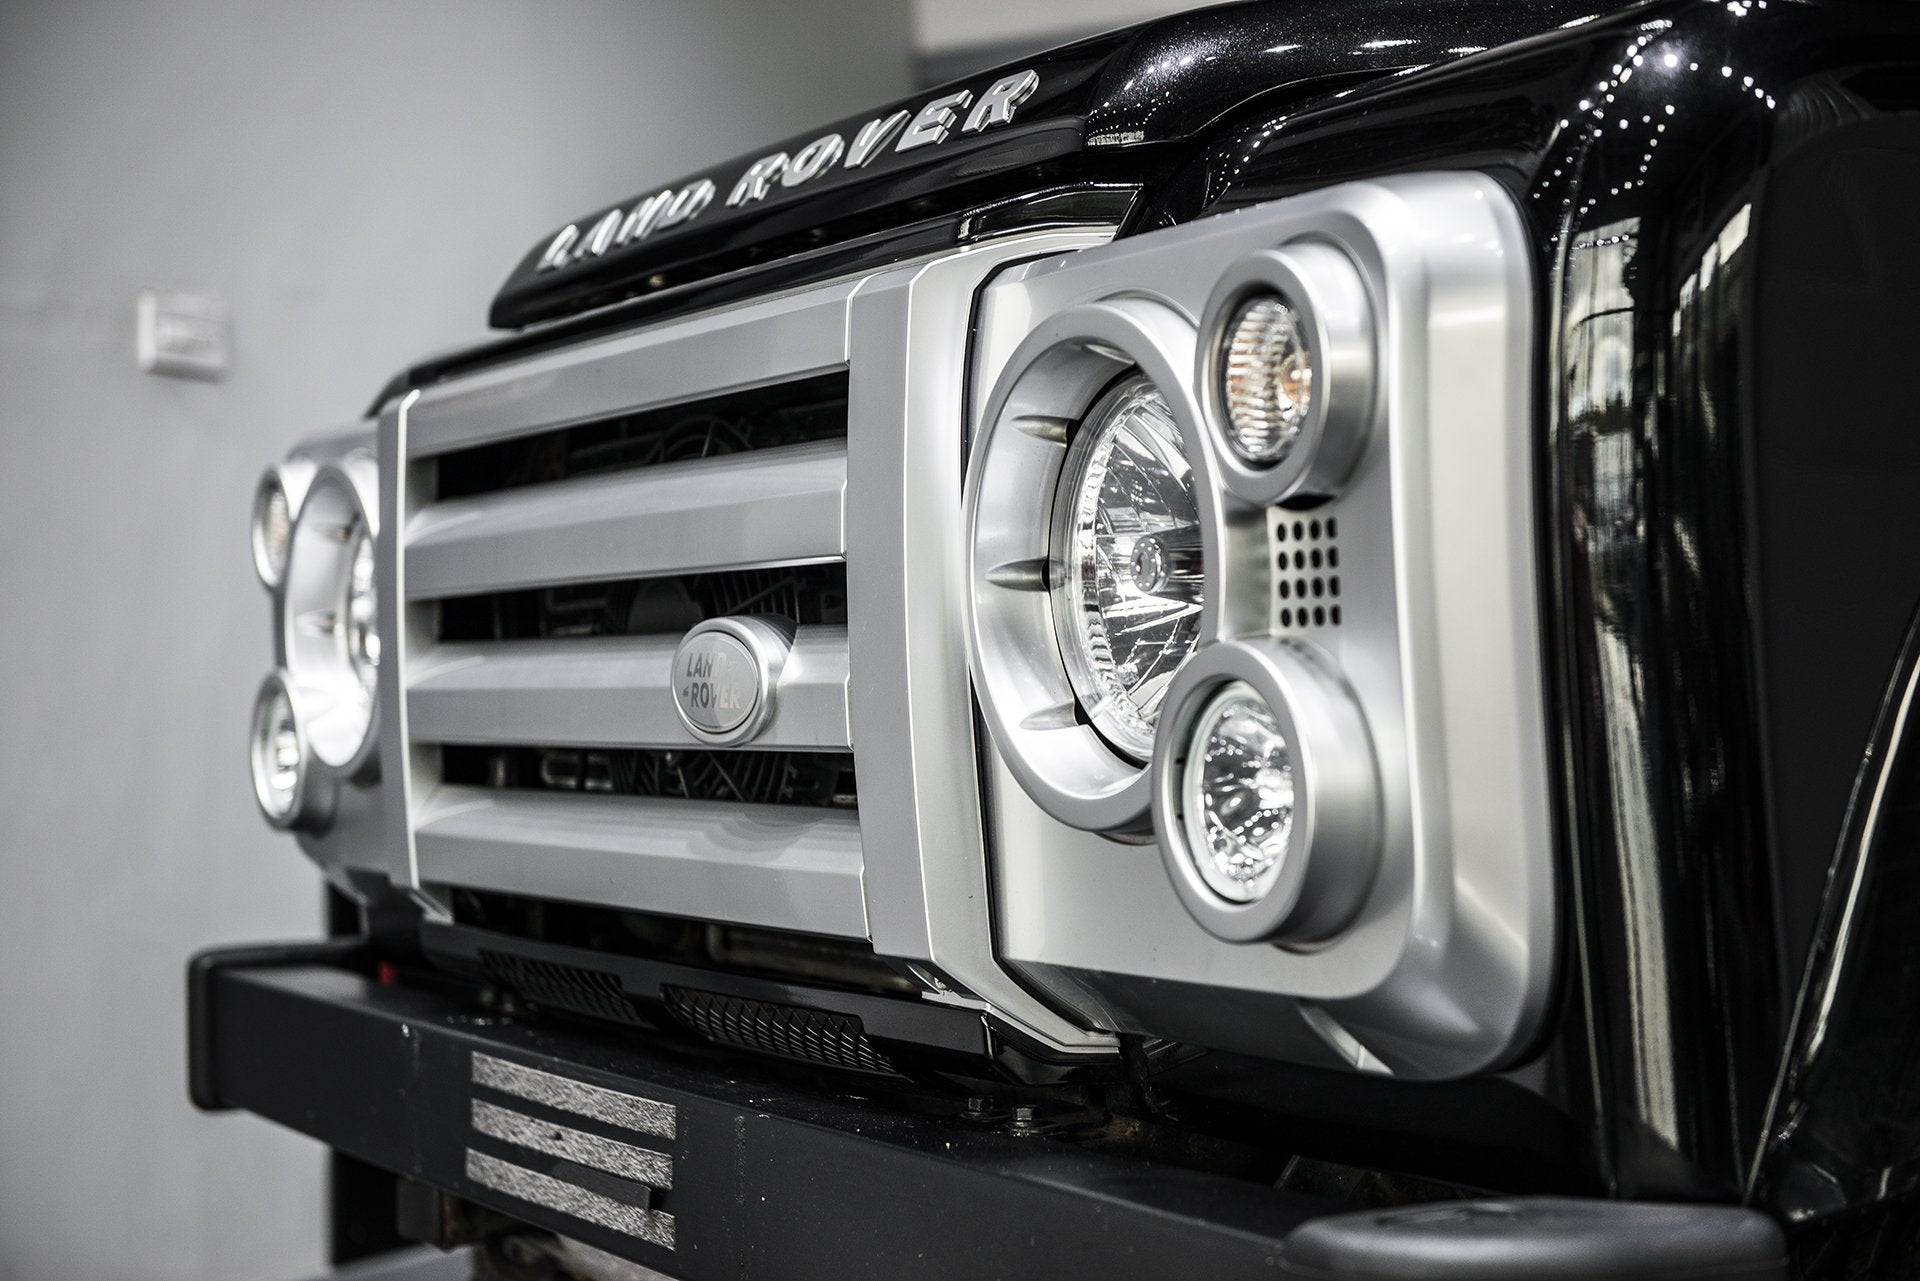 Land Rover Defender 110 (1991-2016) Retro Front Grille With Headlight Surrounds by Chelsea Truck Company - Image 1165